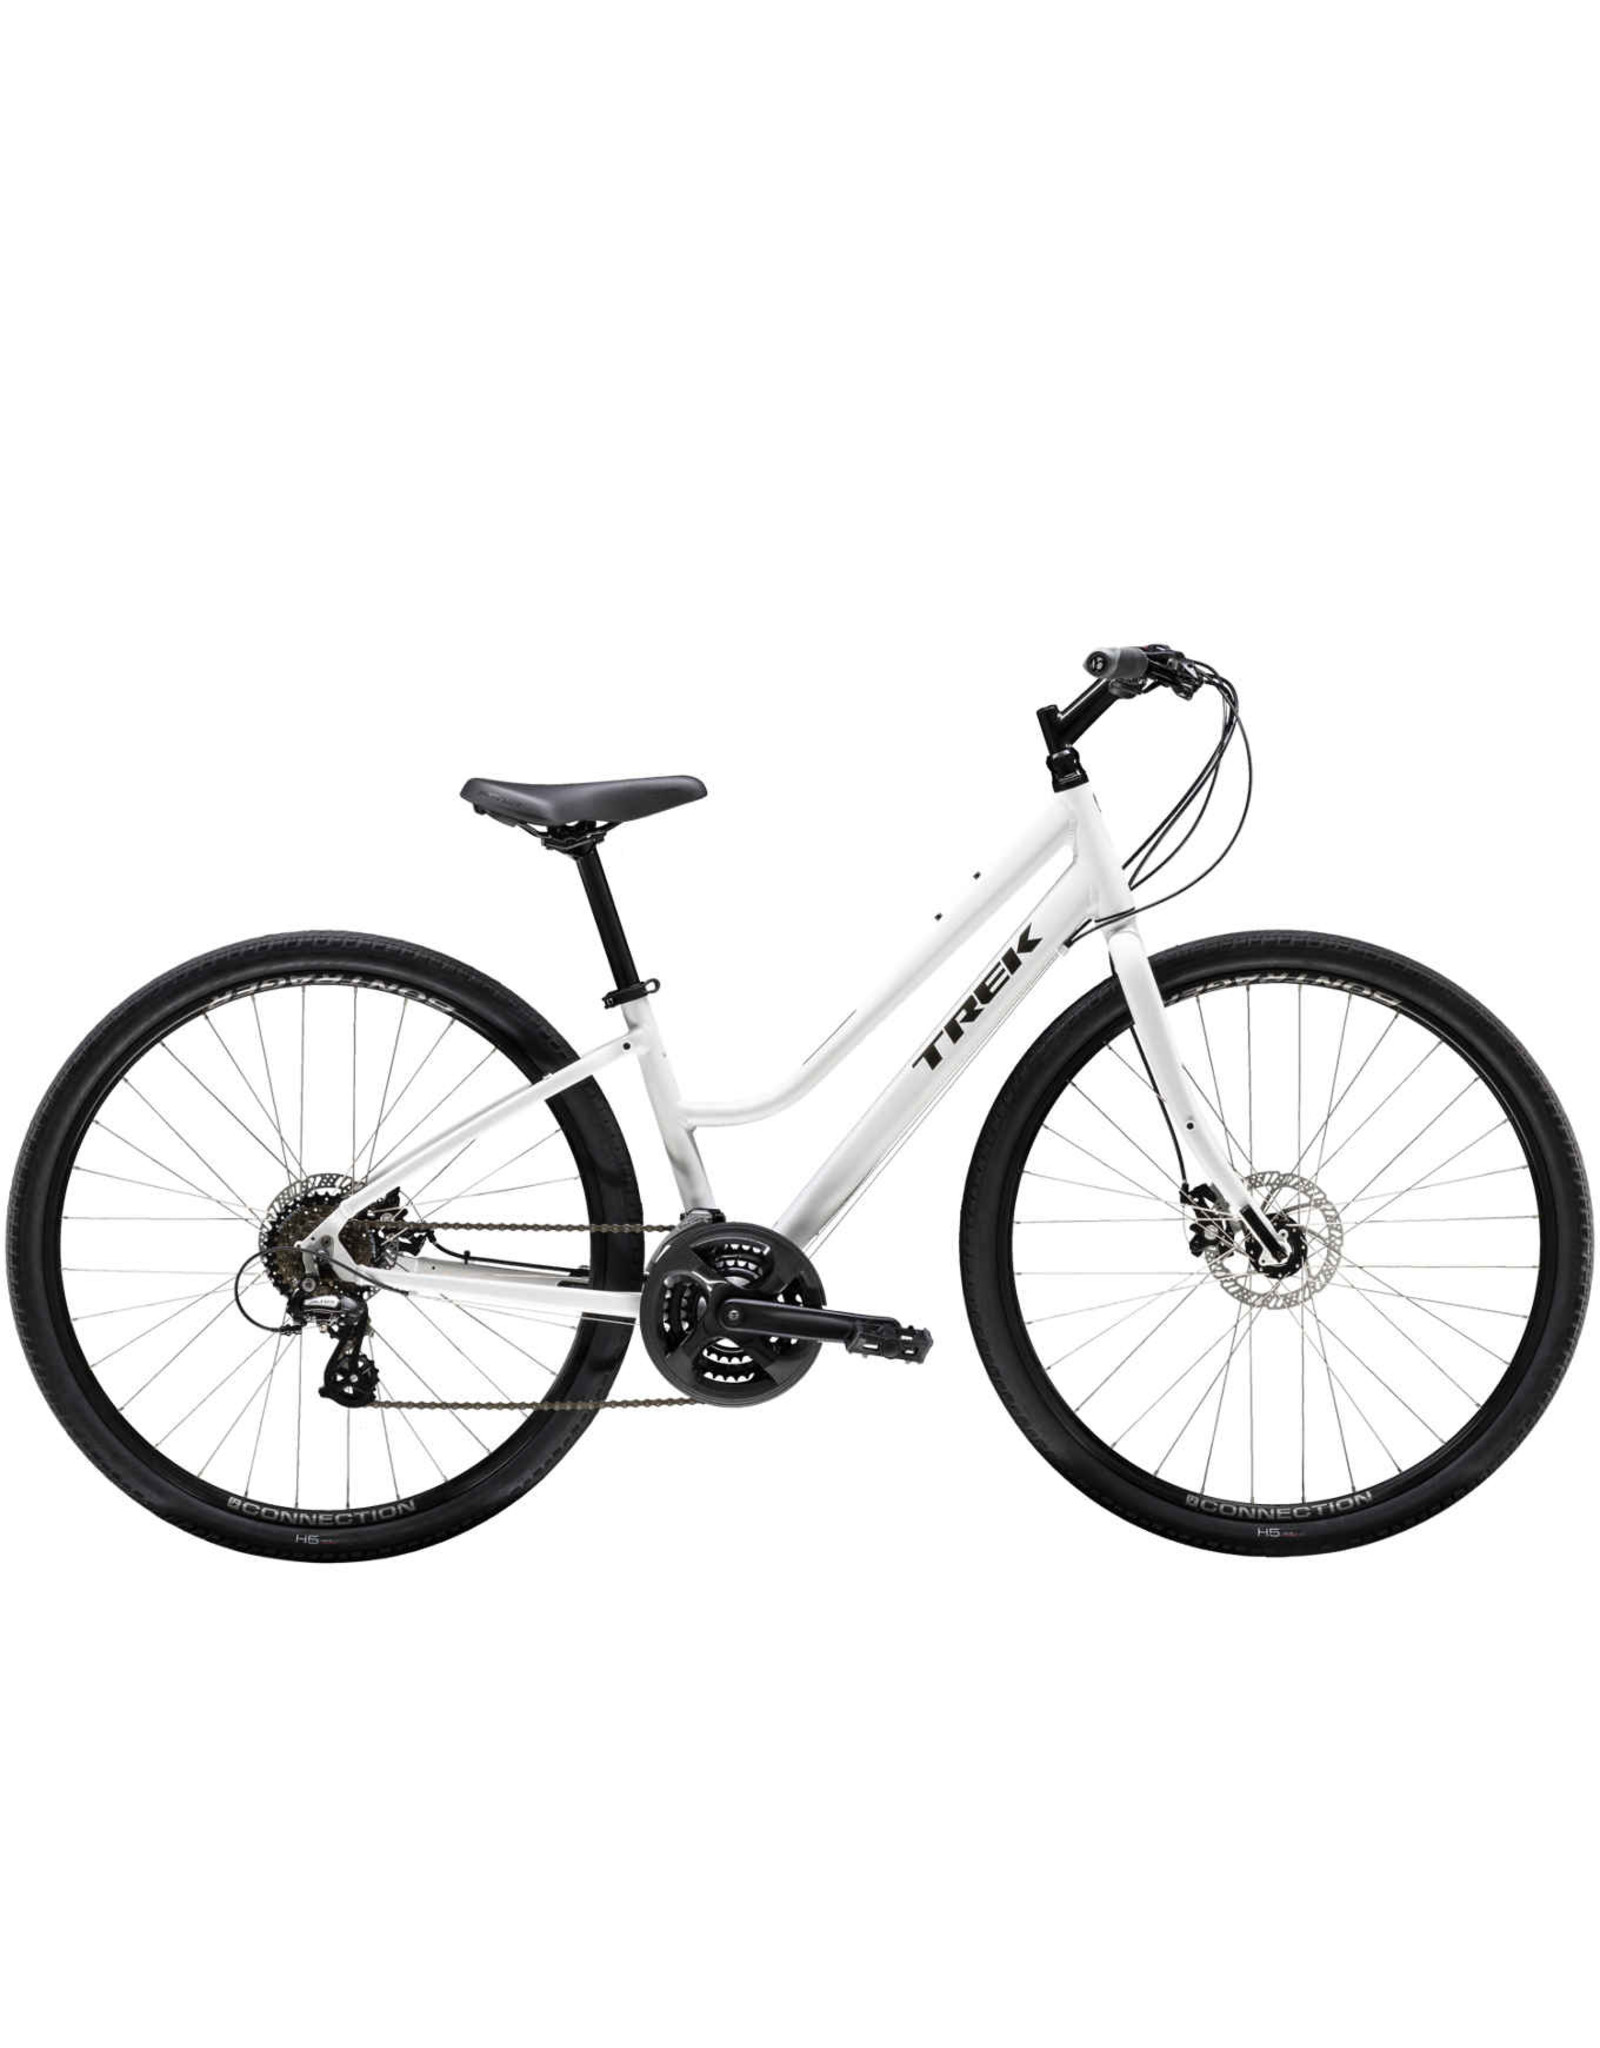 TREK BIKE TREK Verve 1 Disc Low Step SMALL